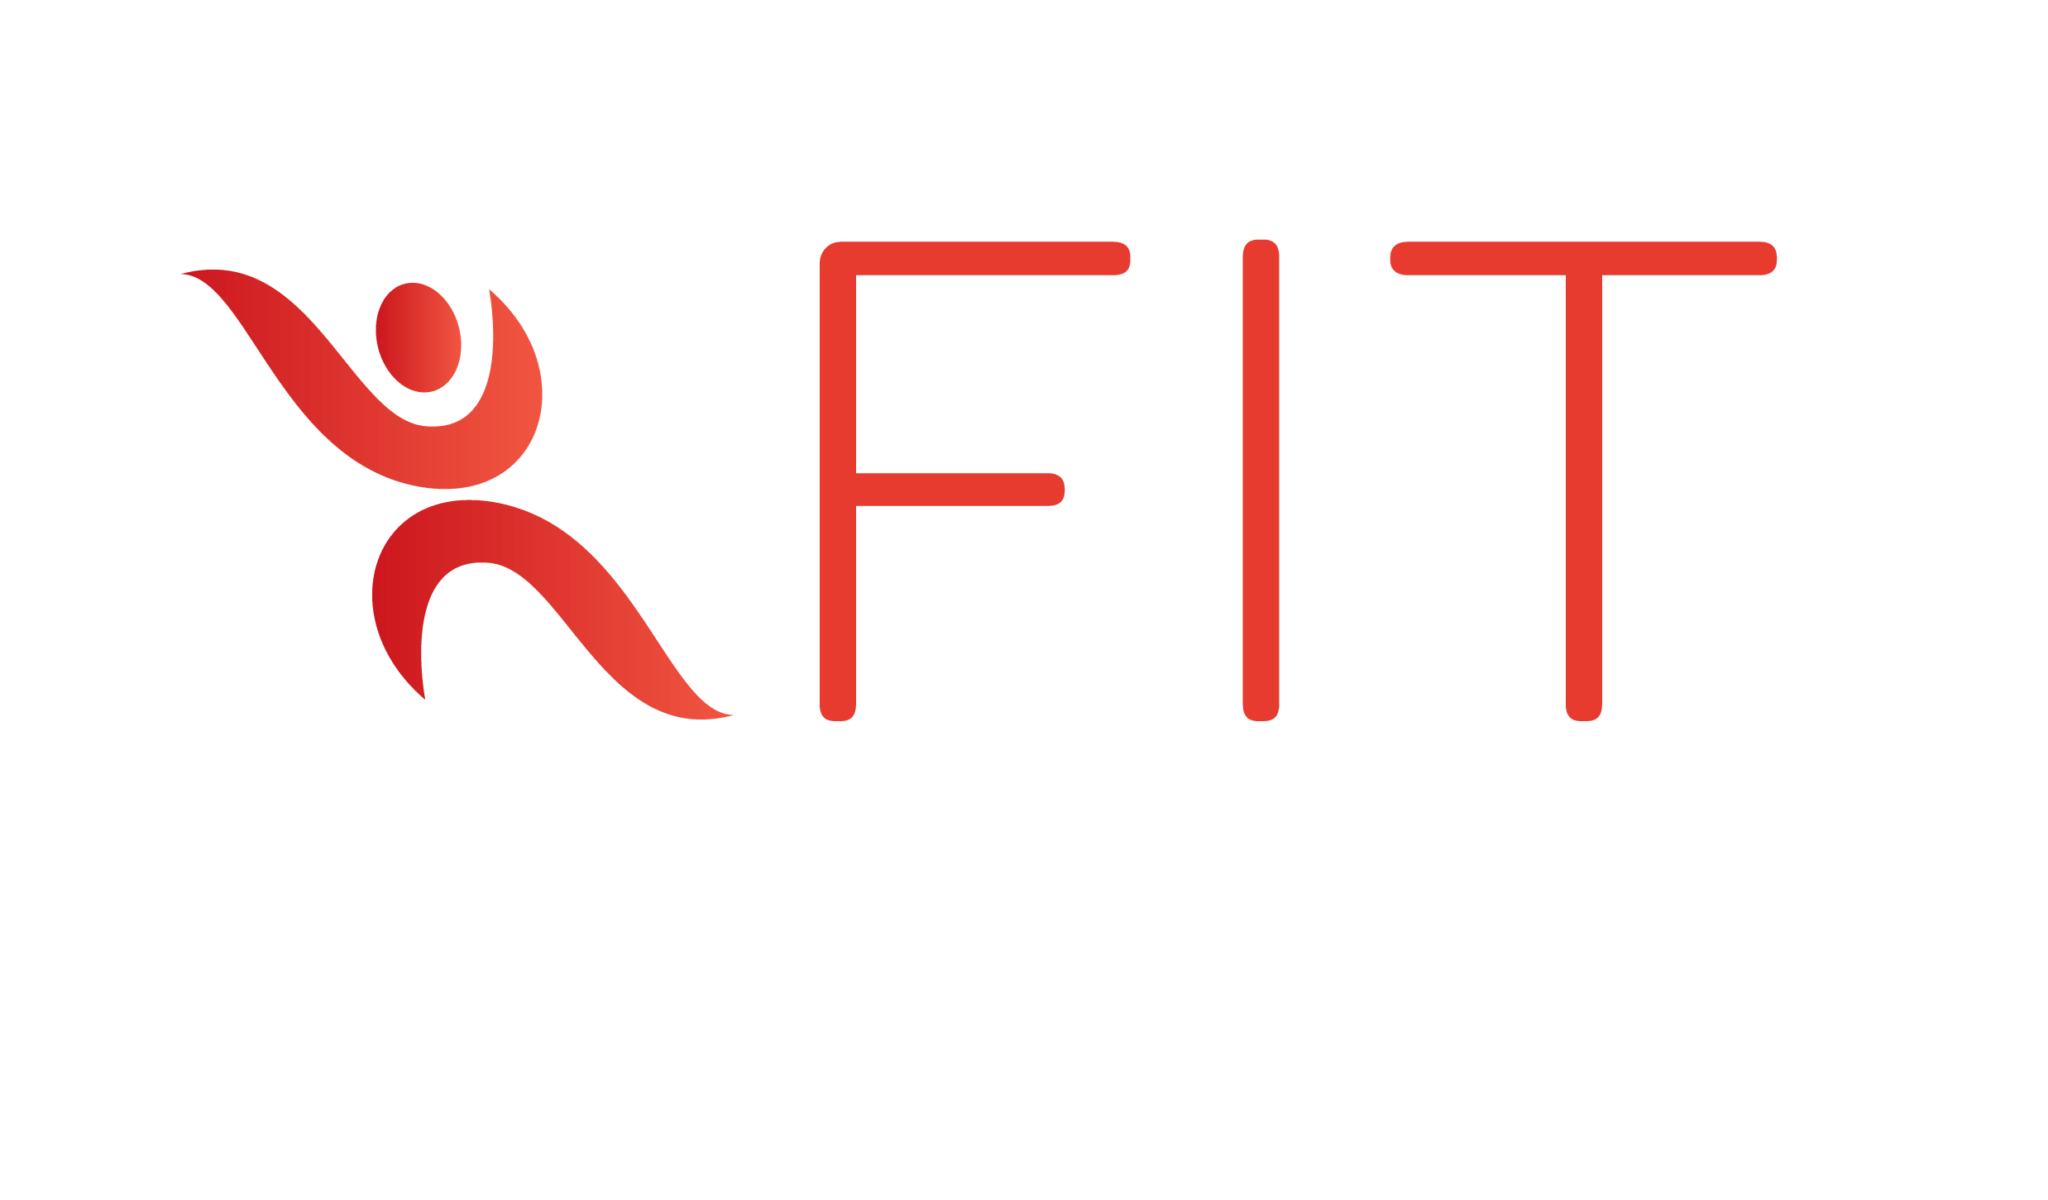 fit company in grand junction